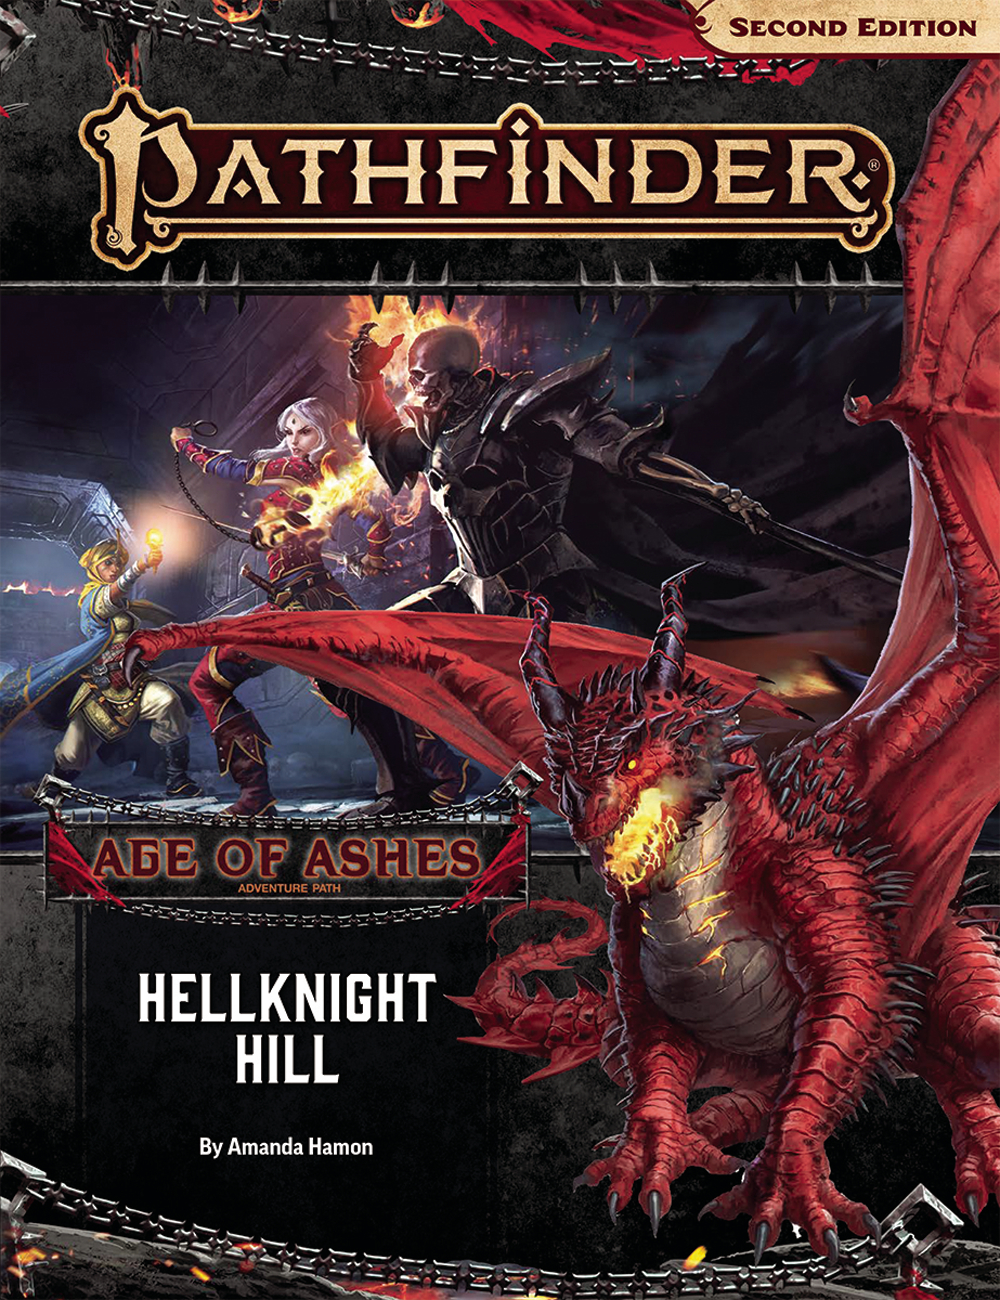 PATHFINDER ADV PATH AGE OF ASHES (P2) VOL 01 (OF 6)